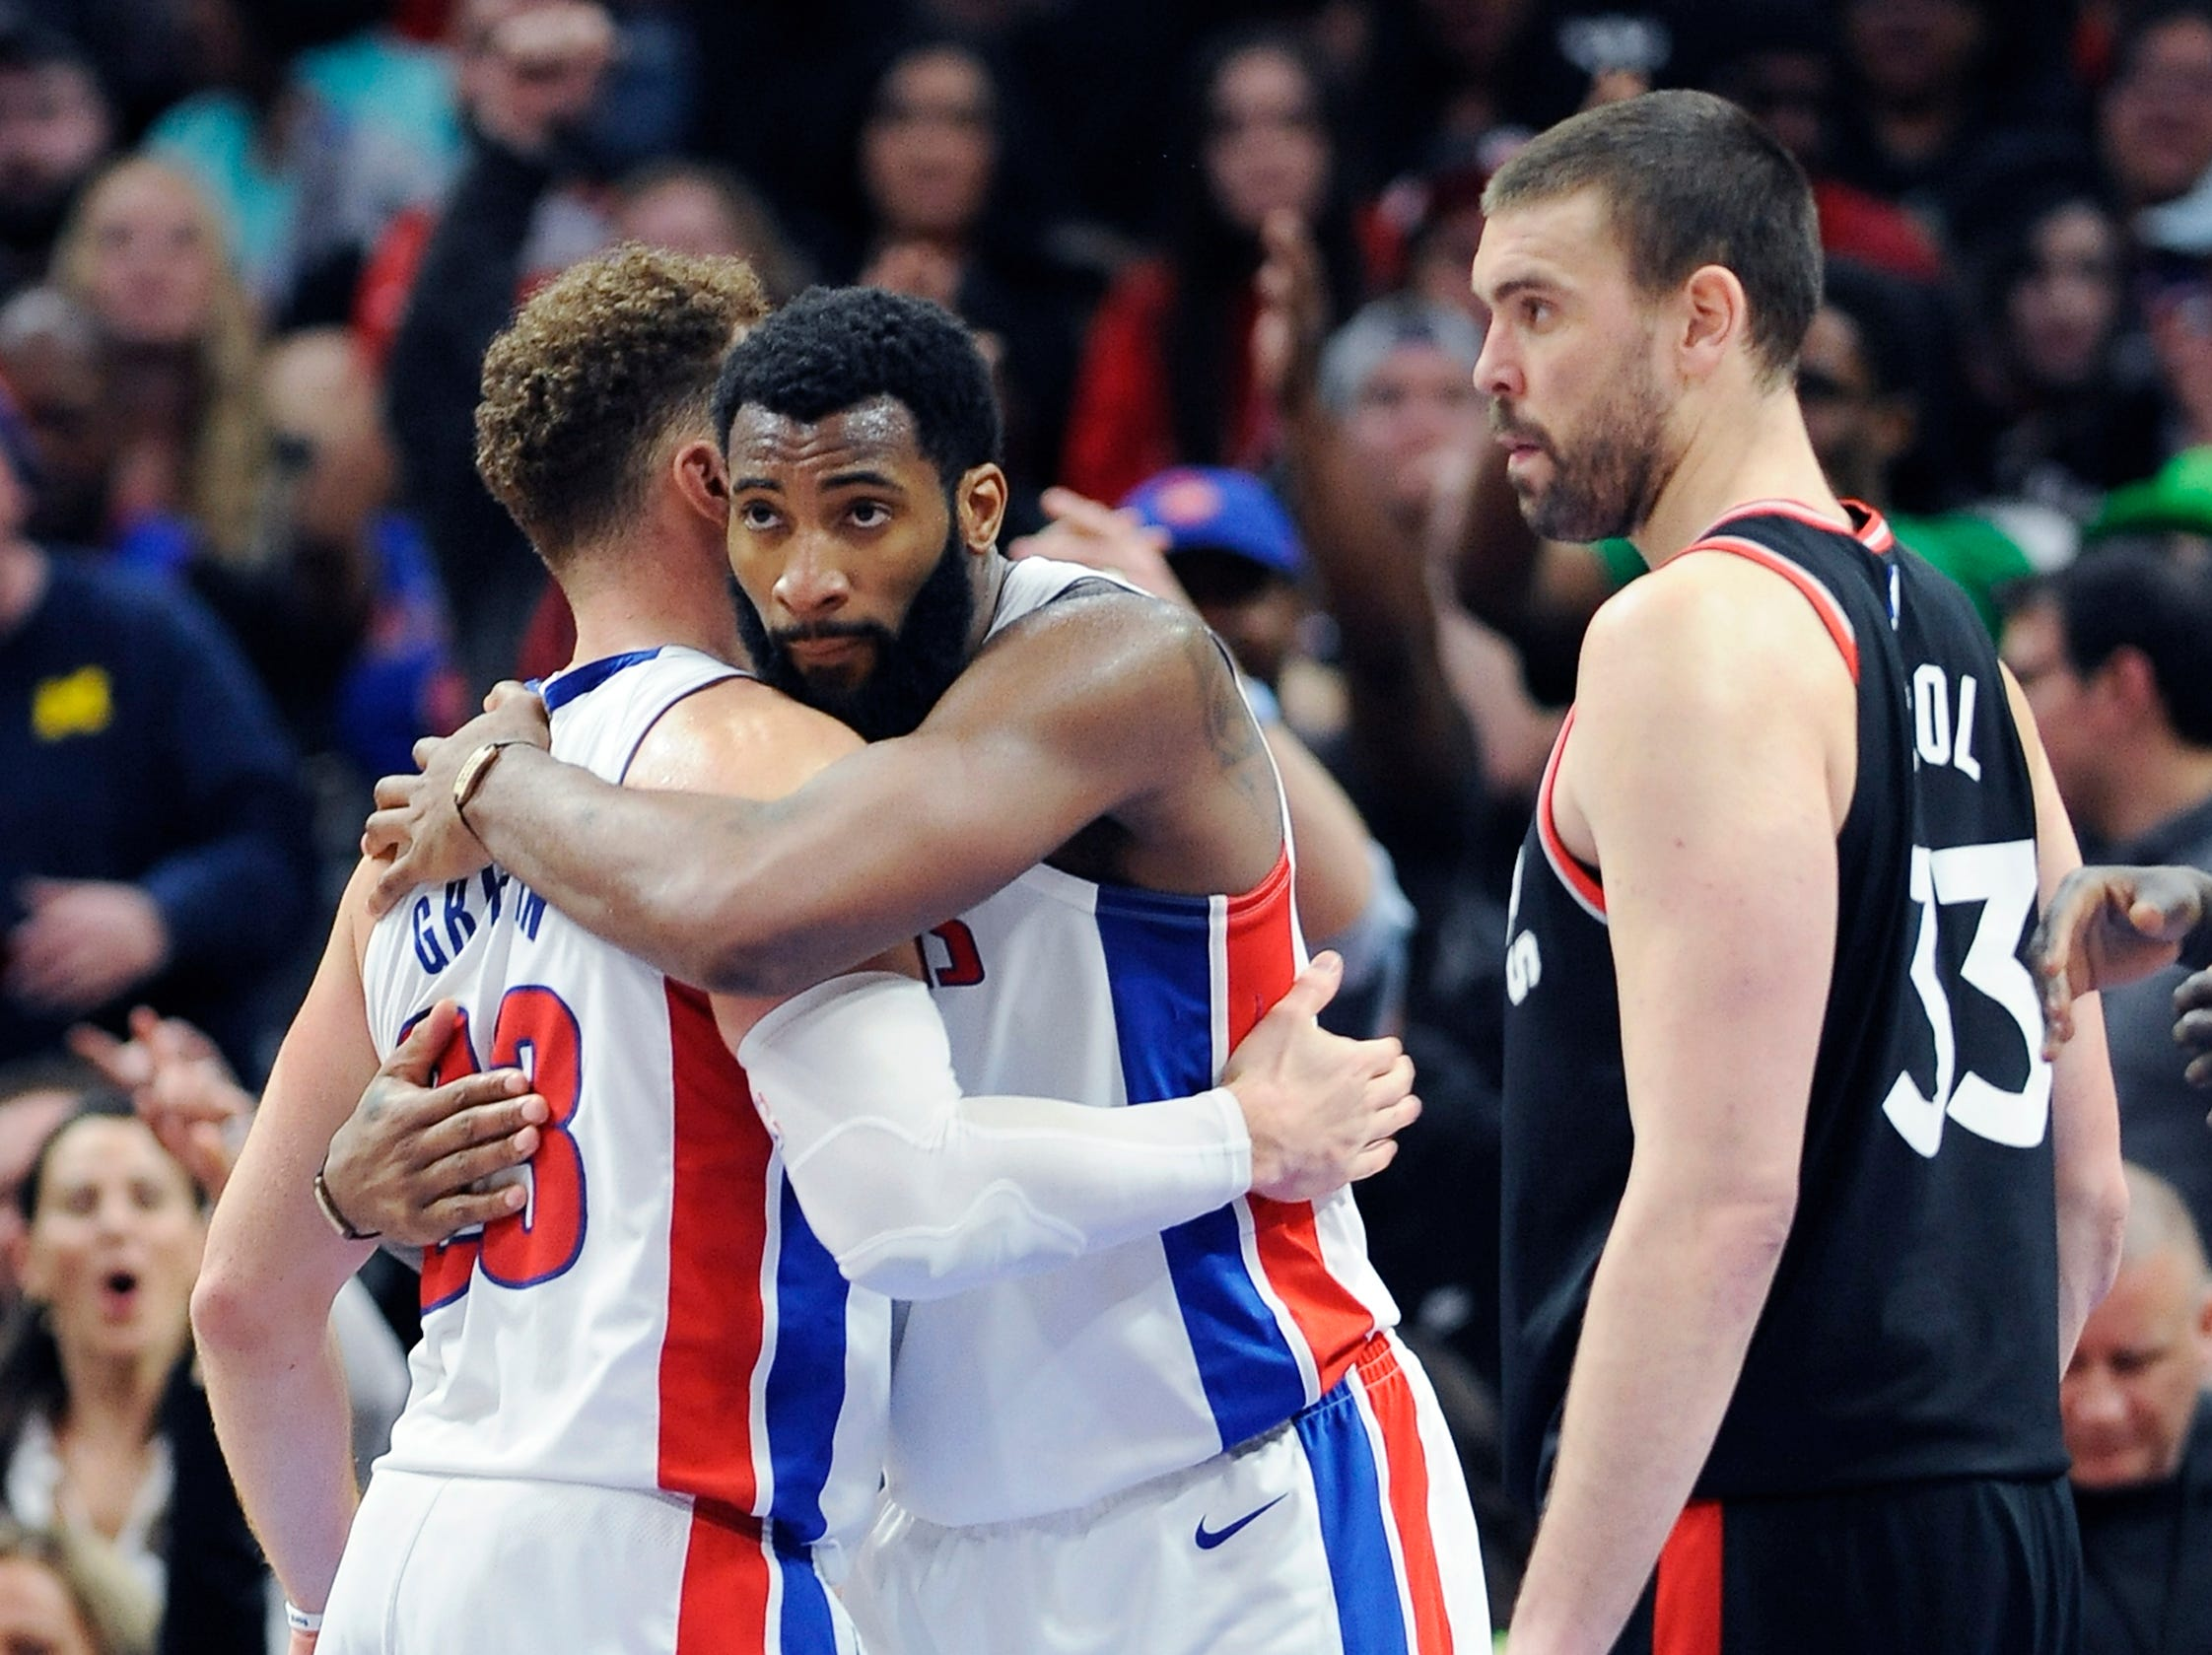 Pistons' Andre Drummond, (l), and Blake Griffin embrace at the end of the game.